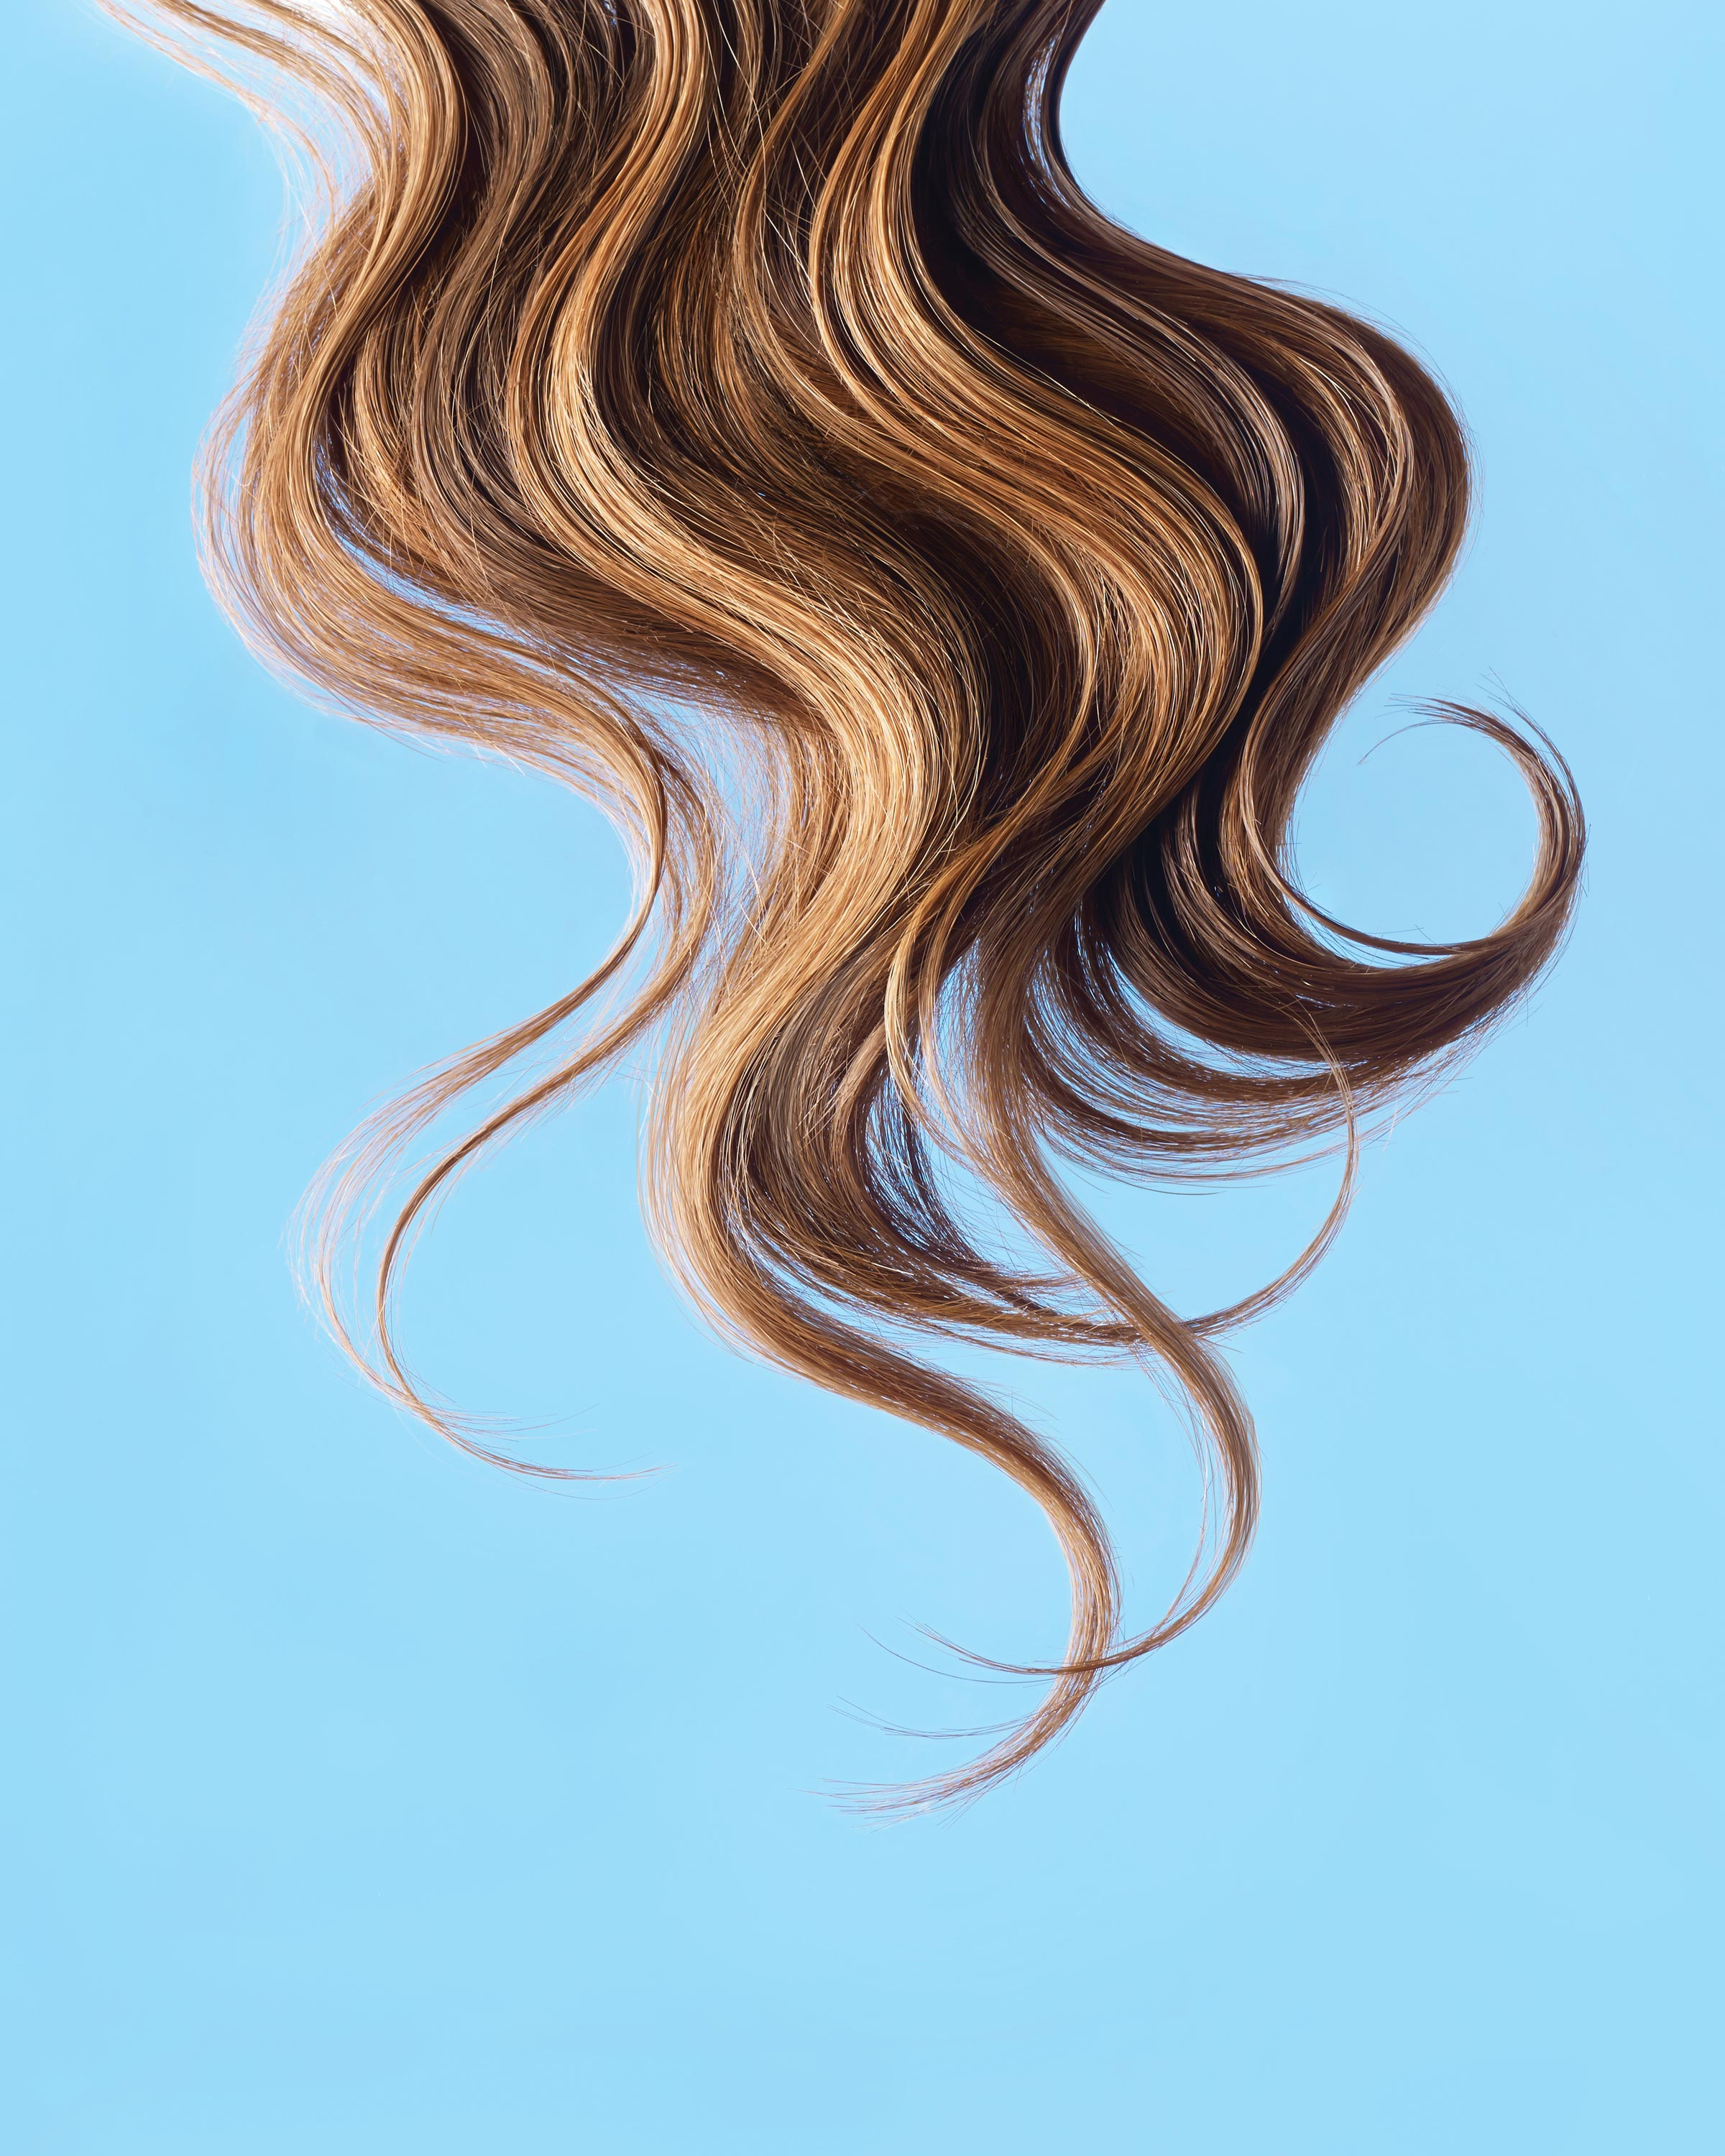 Six Tips for Maintaining a Blowout